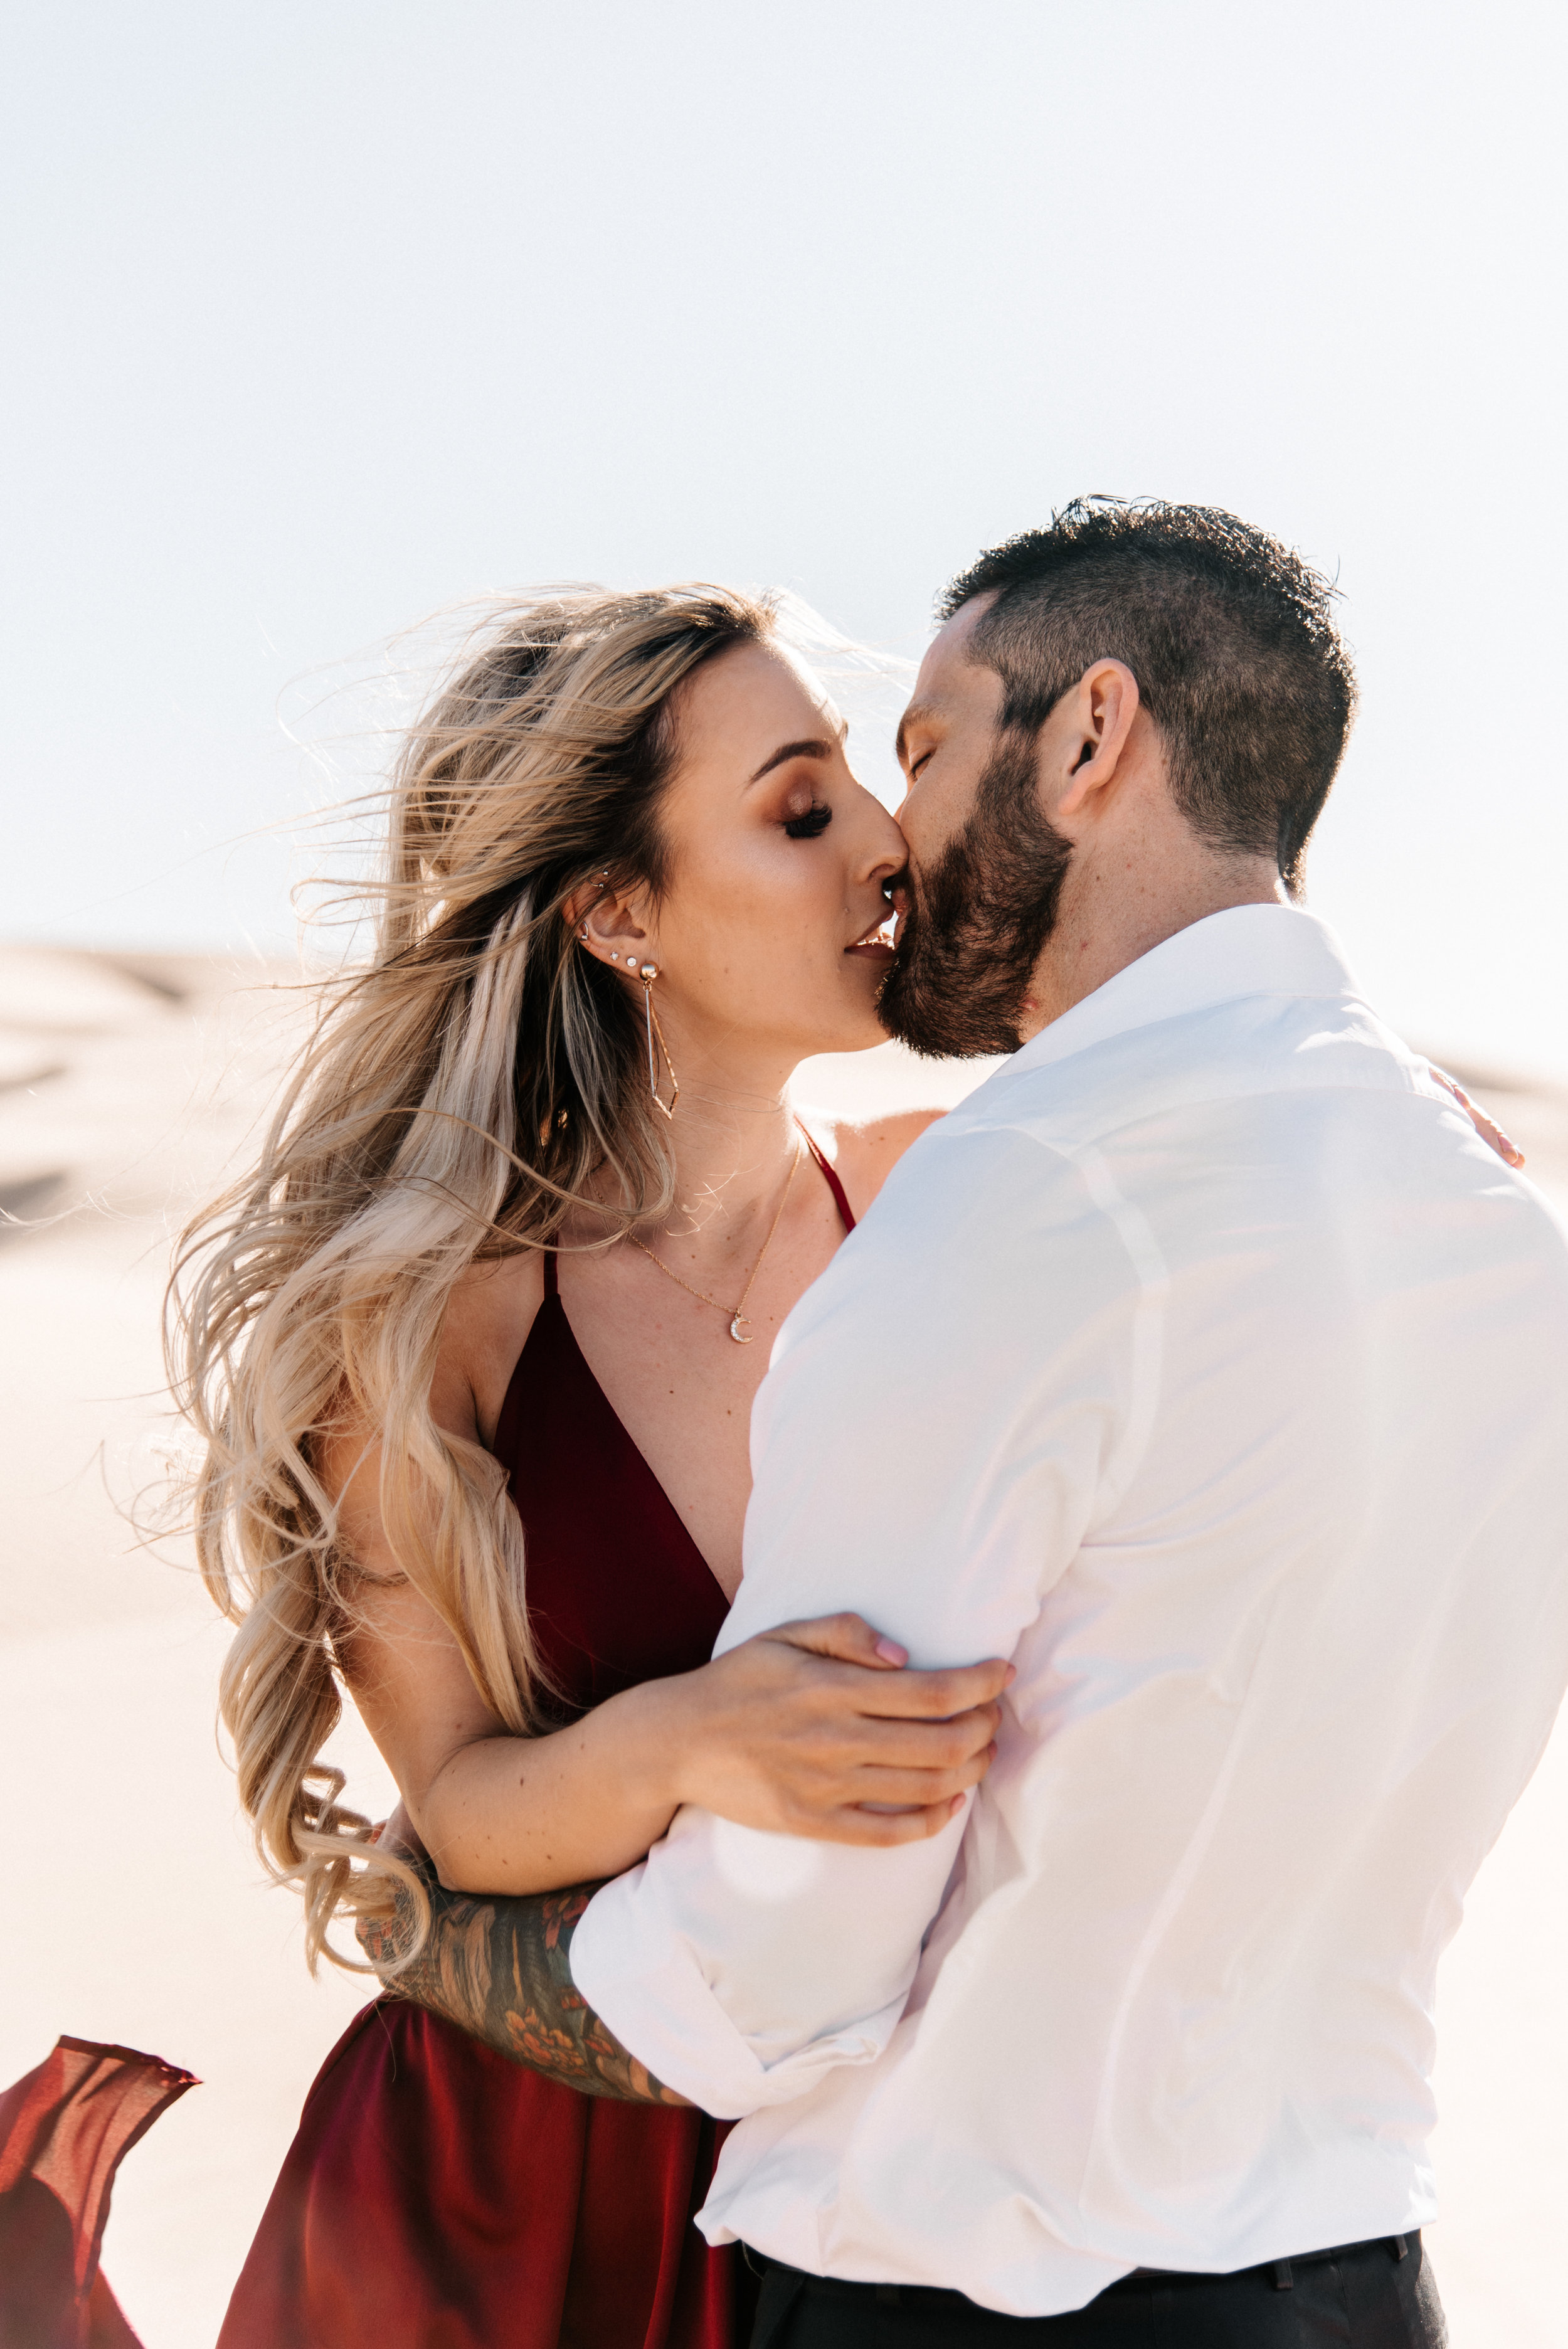 SamErica Studios - Modern San Diego Engagement Photographer - Adventure Engagement Session in Glamis Sand Dunes California-19.jpg